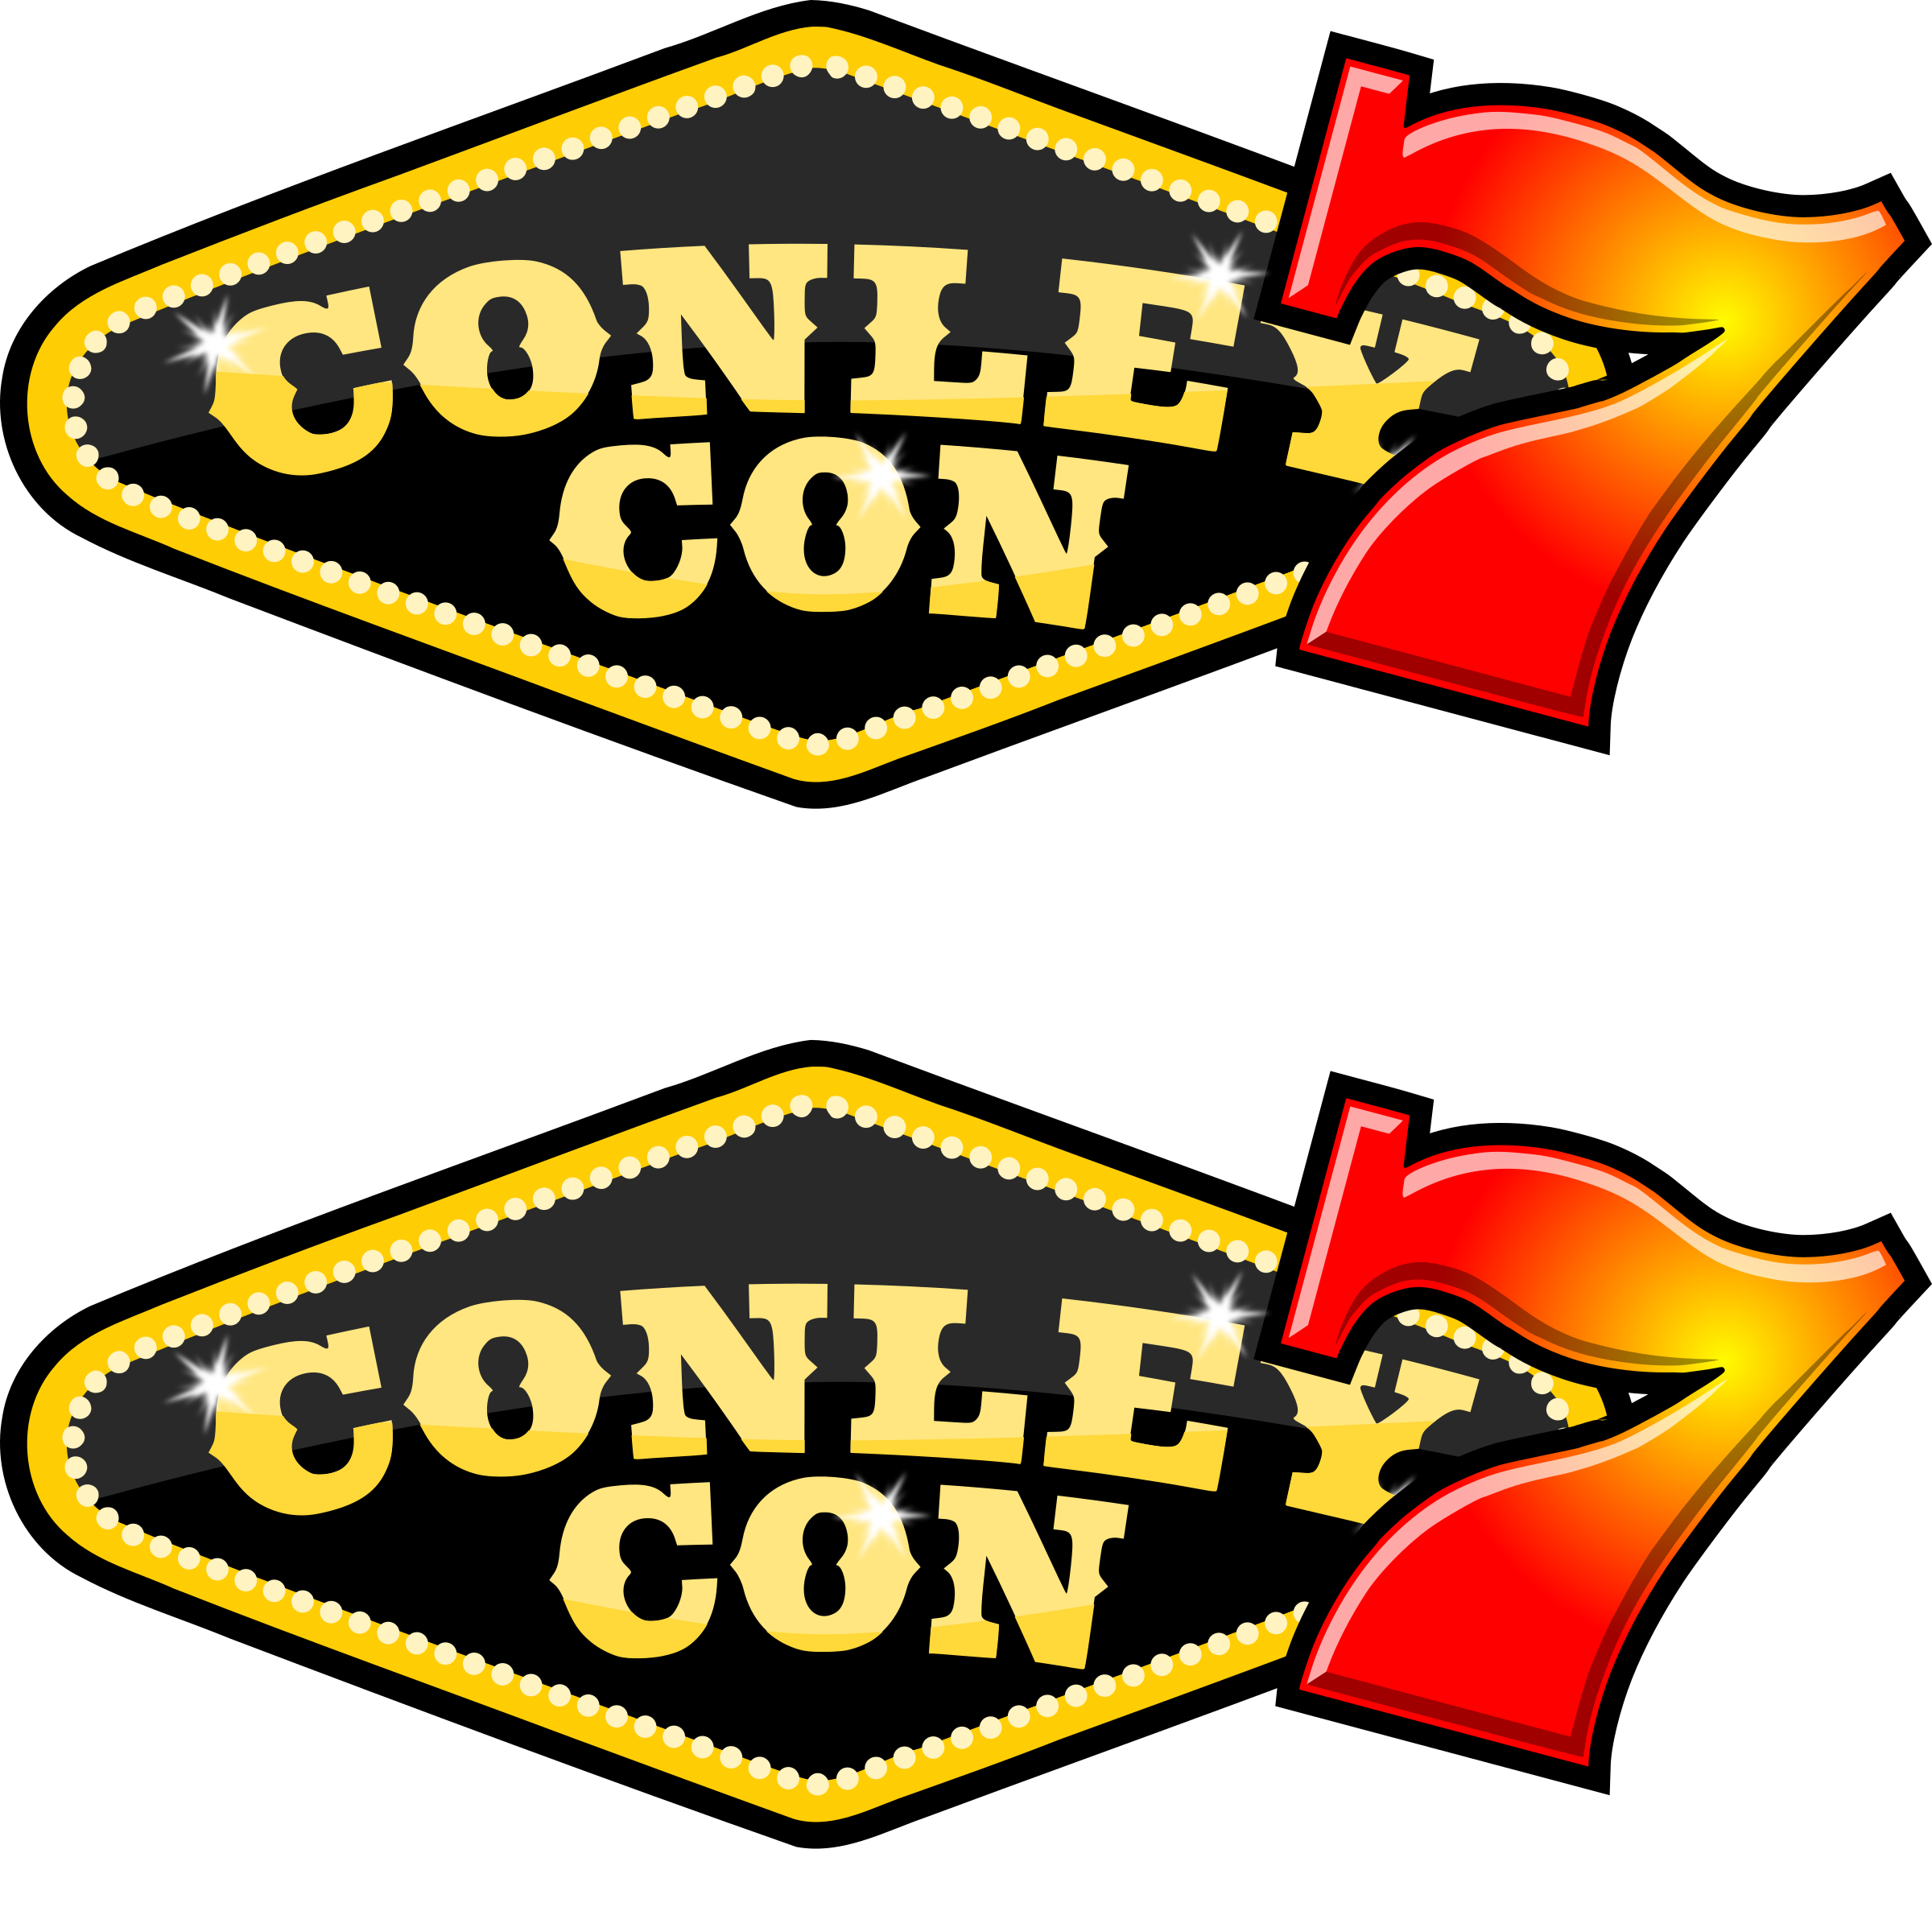 Casino-themed ConleyCon sticker by dear_theophilus